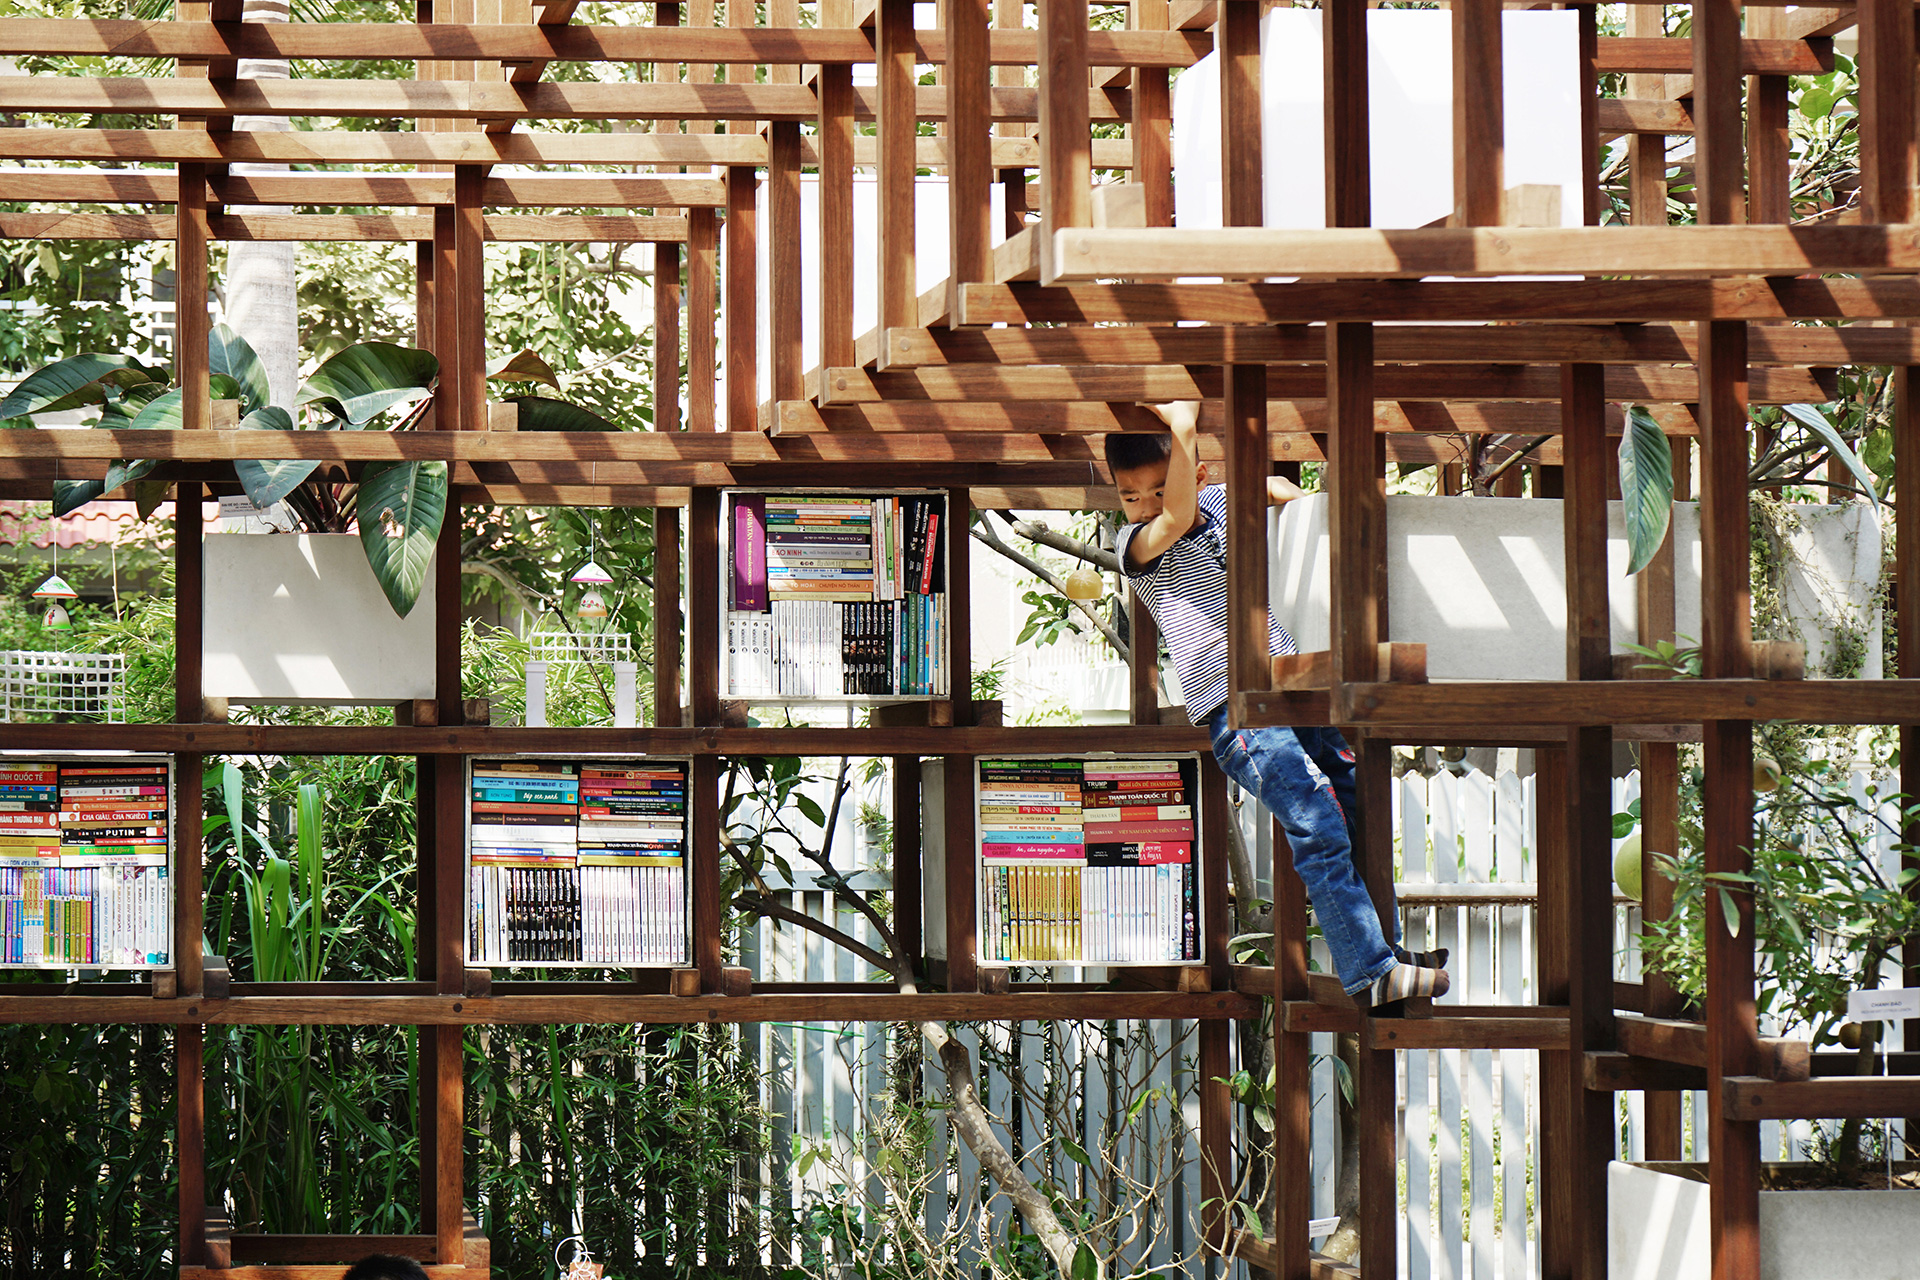 : More than anything, children love climbing the wooden beams | VAC Library | Farming Architects | STIR